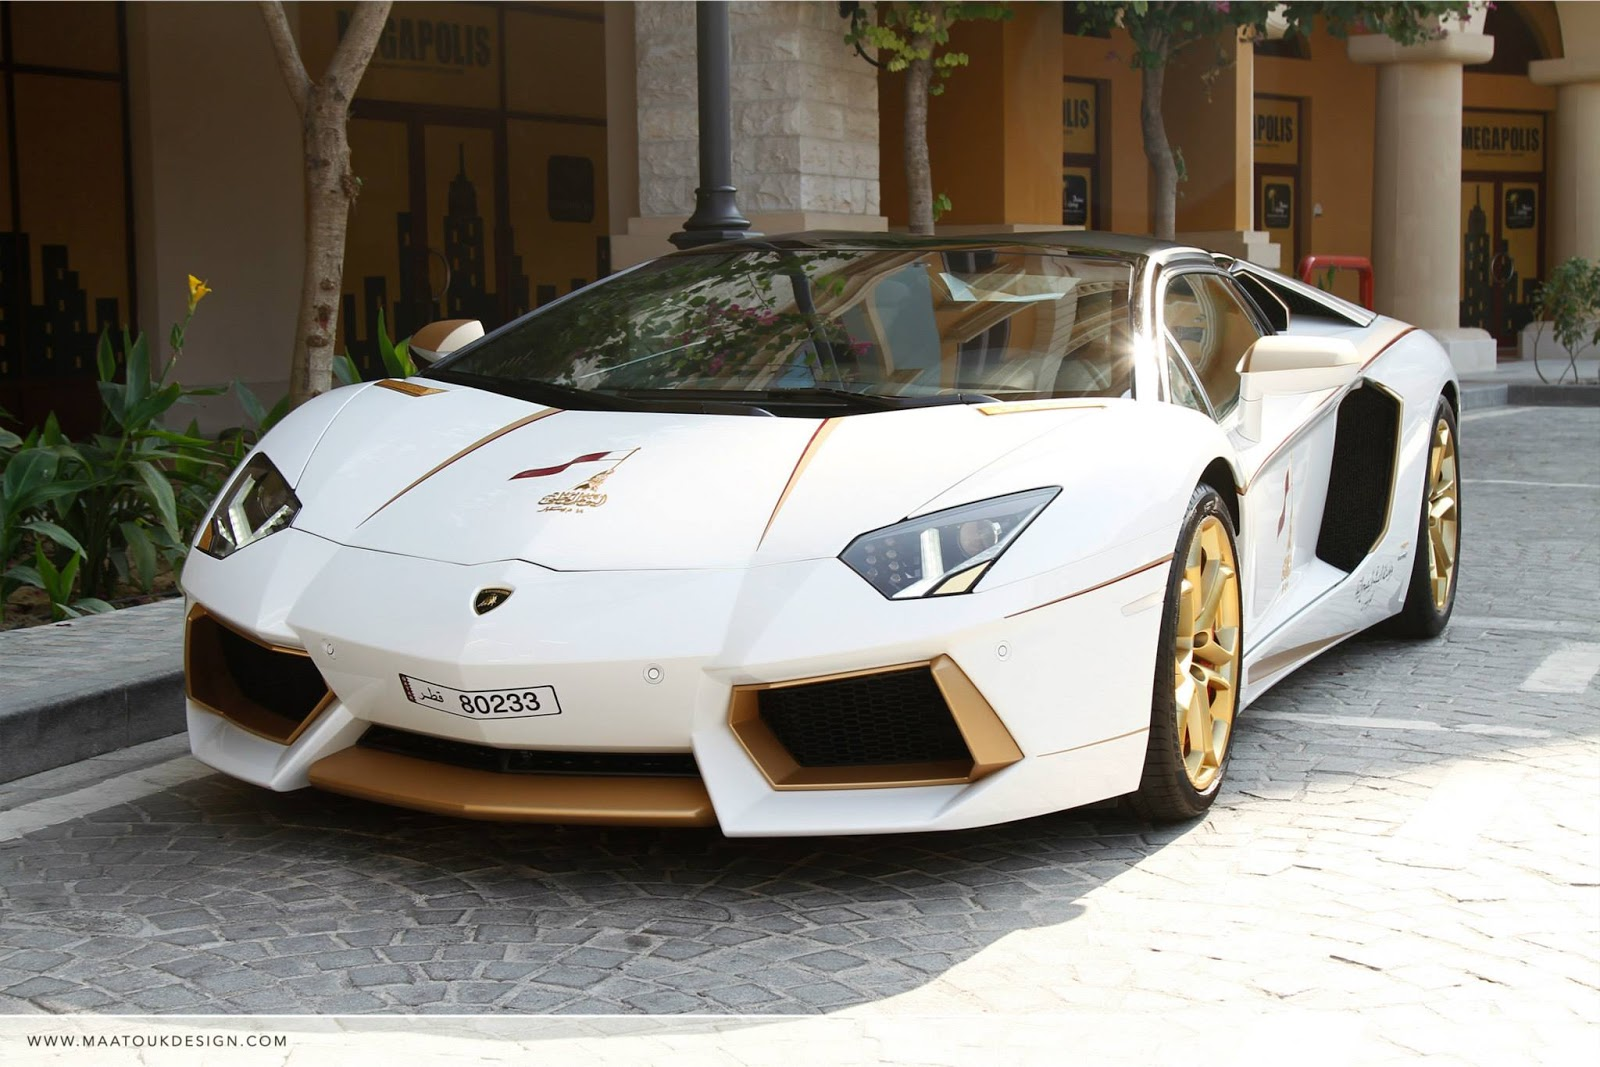 Gold Plated Lamborghini Aventador Is Quot 1 Of 1 Quot W Video